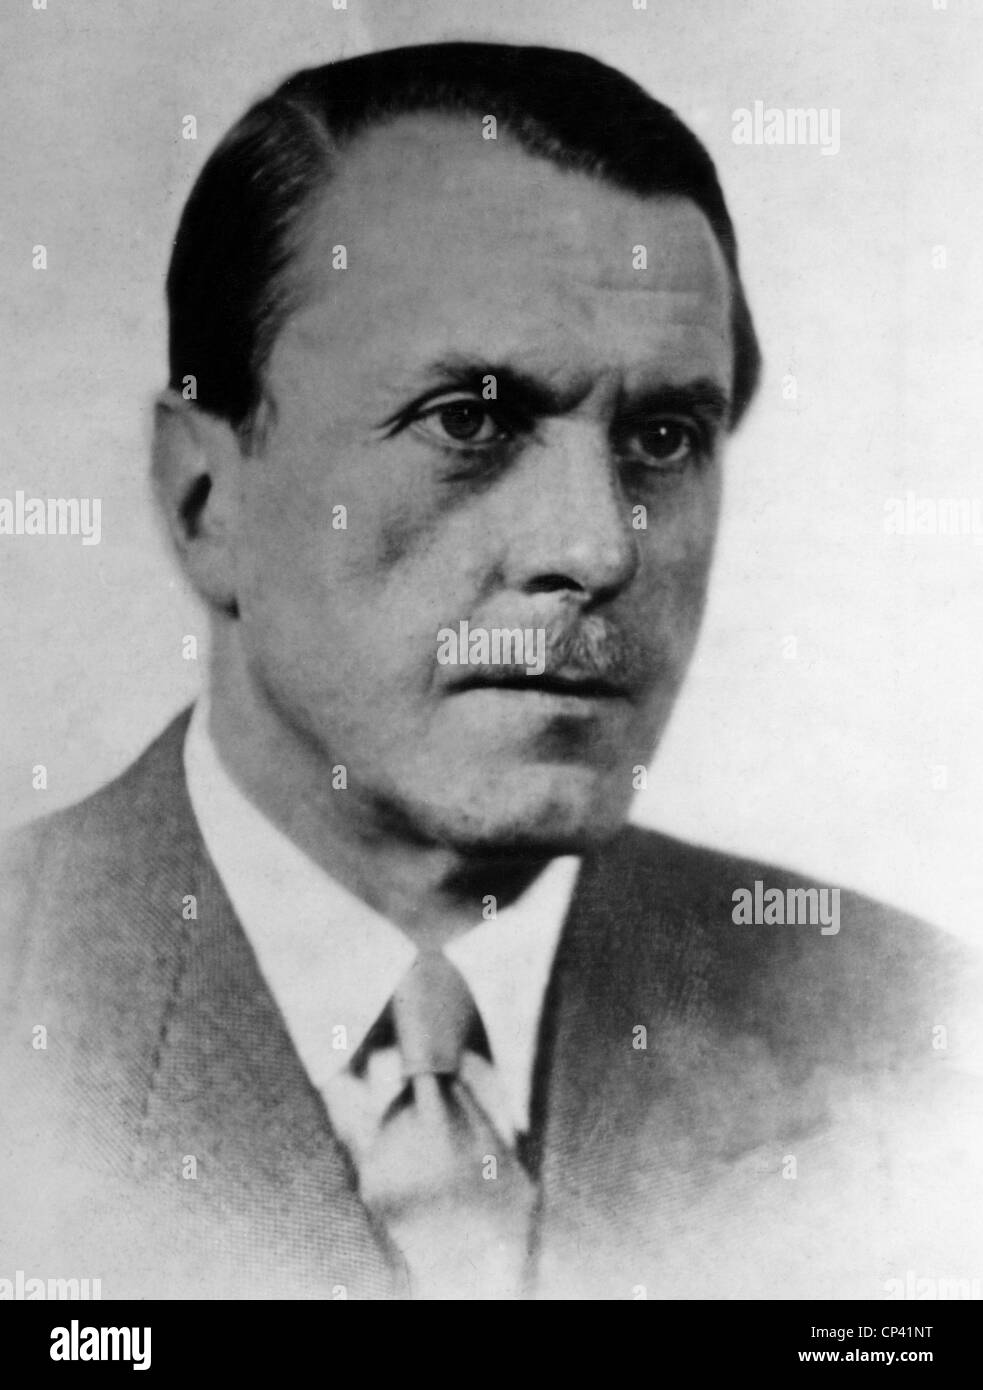 Brentano, Bernard von, 15.10.1901 - 29.12.1964, German writer, author, writers, authors, portrait, 1940s, , Additional - Stock Image